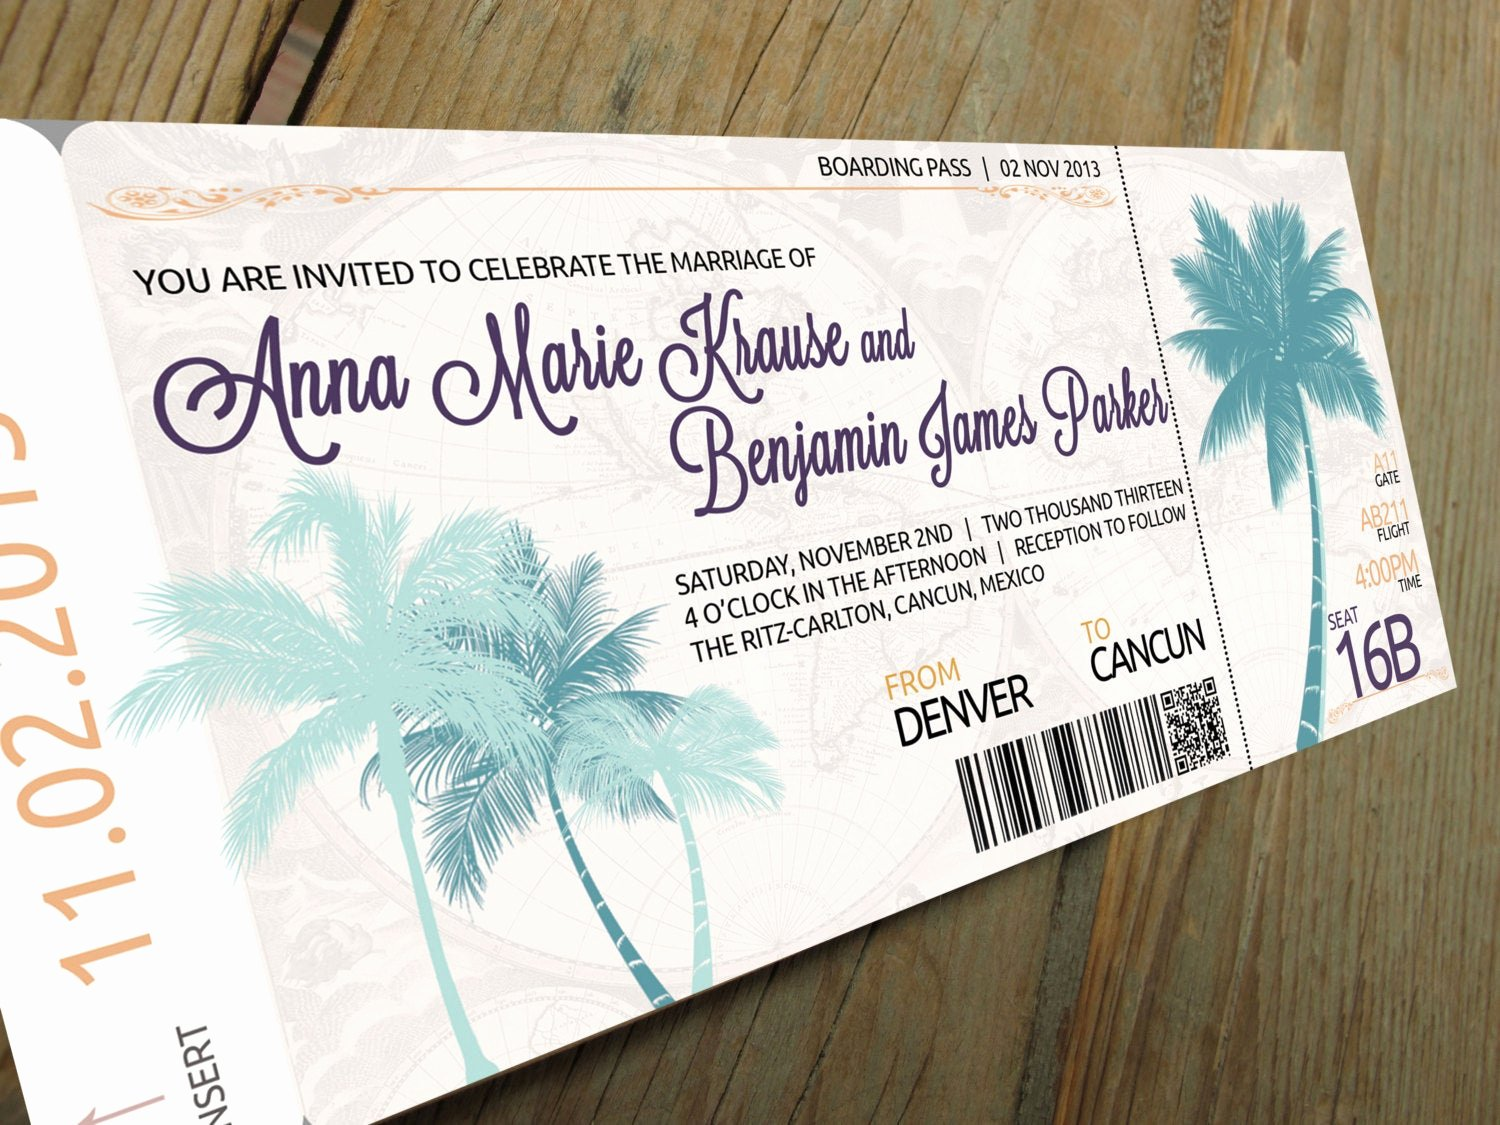 Diy Boarding Pass Invitations New Boarding Pass Wedding Invitation Set by Travelerspaperie